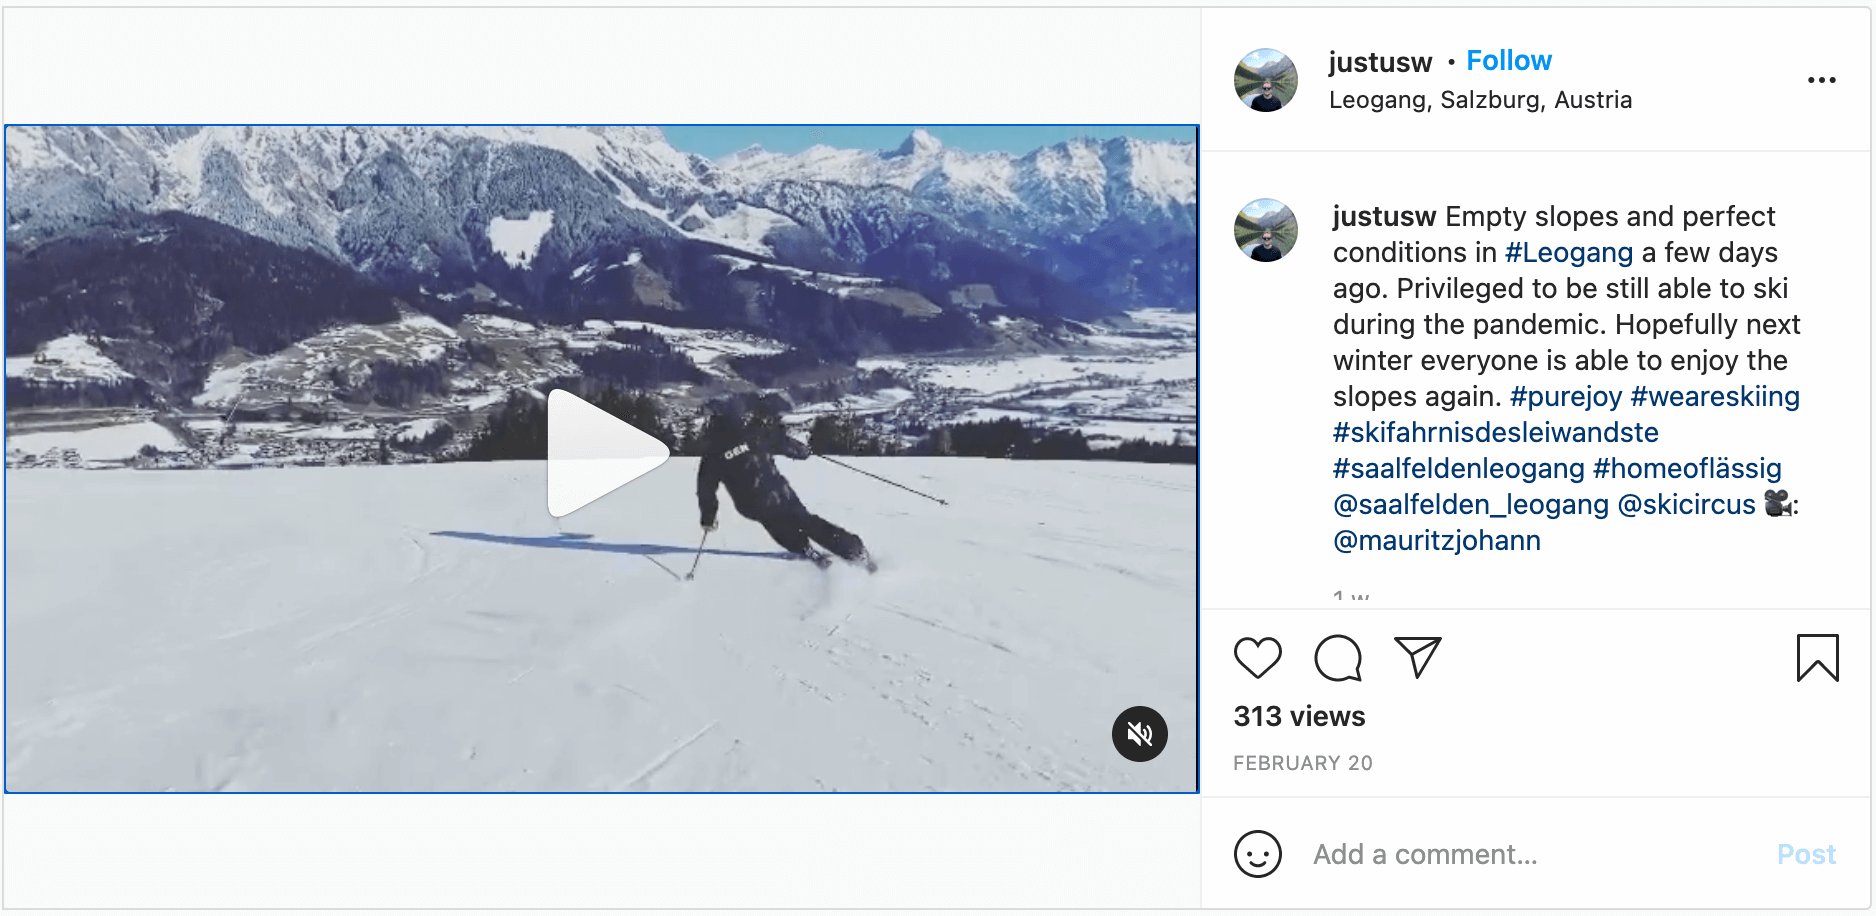 Instagram post by @justusw showing a video of someone skiing down an empty piste. The caption reads: Empty slopes and perfect conditions in #Leogang a few days ago. Privileged to be still able to ski during the pandemic. Hopefully next winter everyone is able to enjoy the slopes again. #purejoy #weareskiing #skifahrnisdesleiwandste #saalfeldenleogang #homeoflässig @saalfelden_leogang @skicircus 🎥: @mauritzjohann